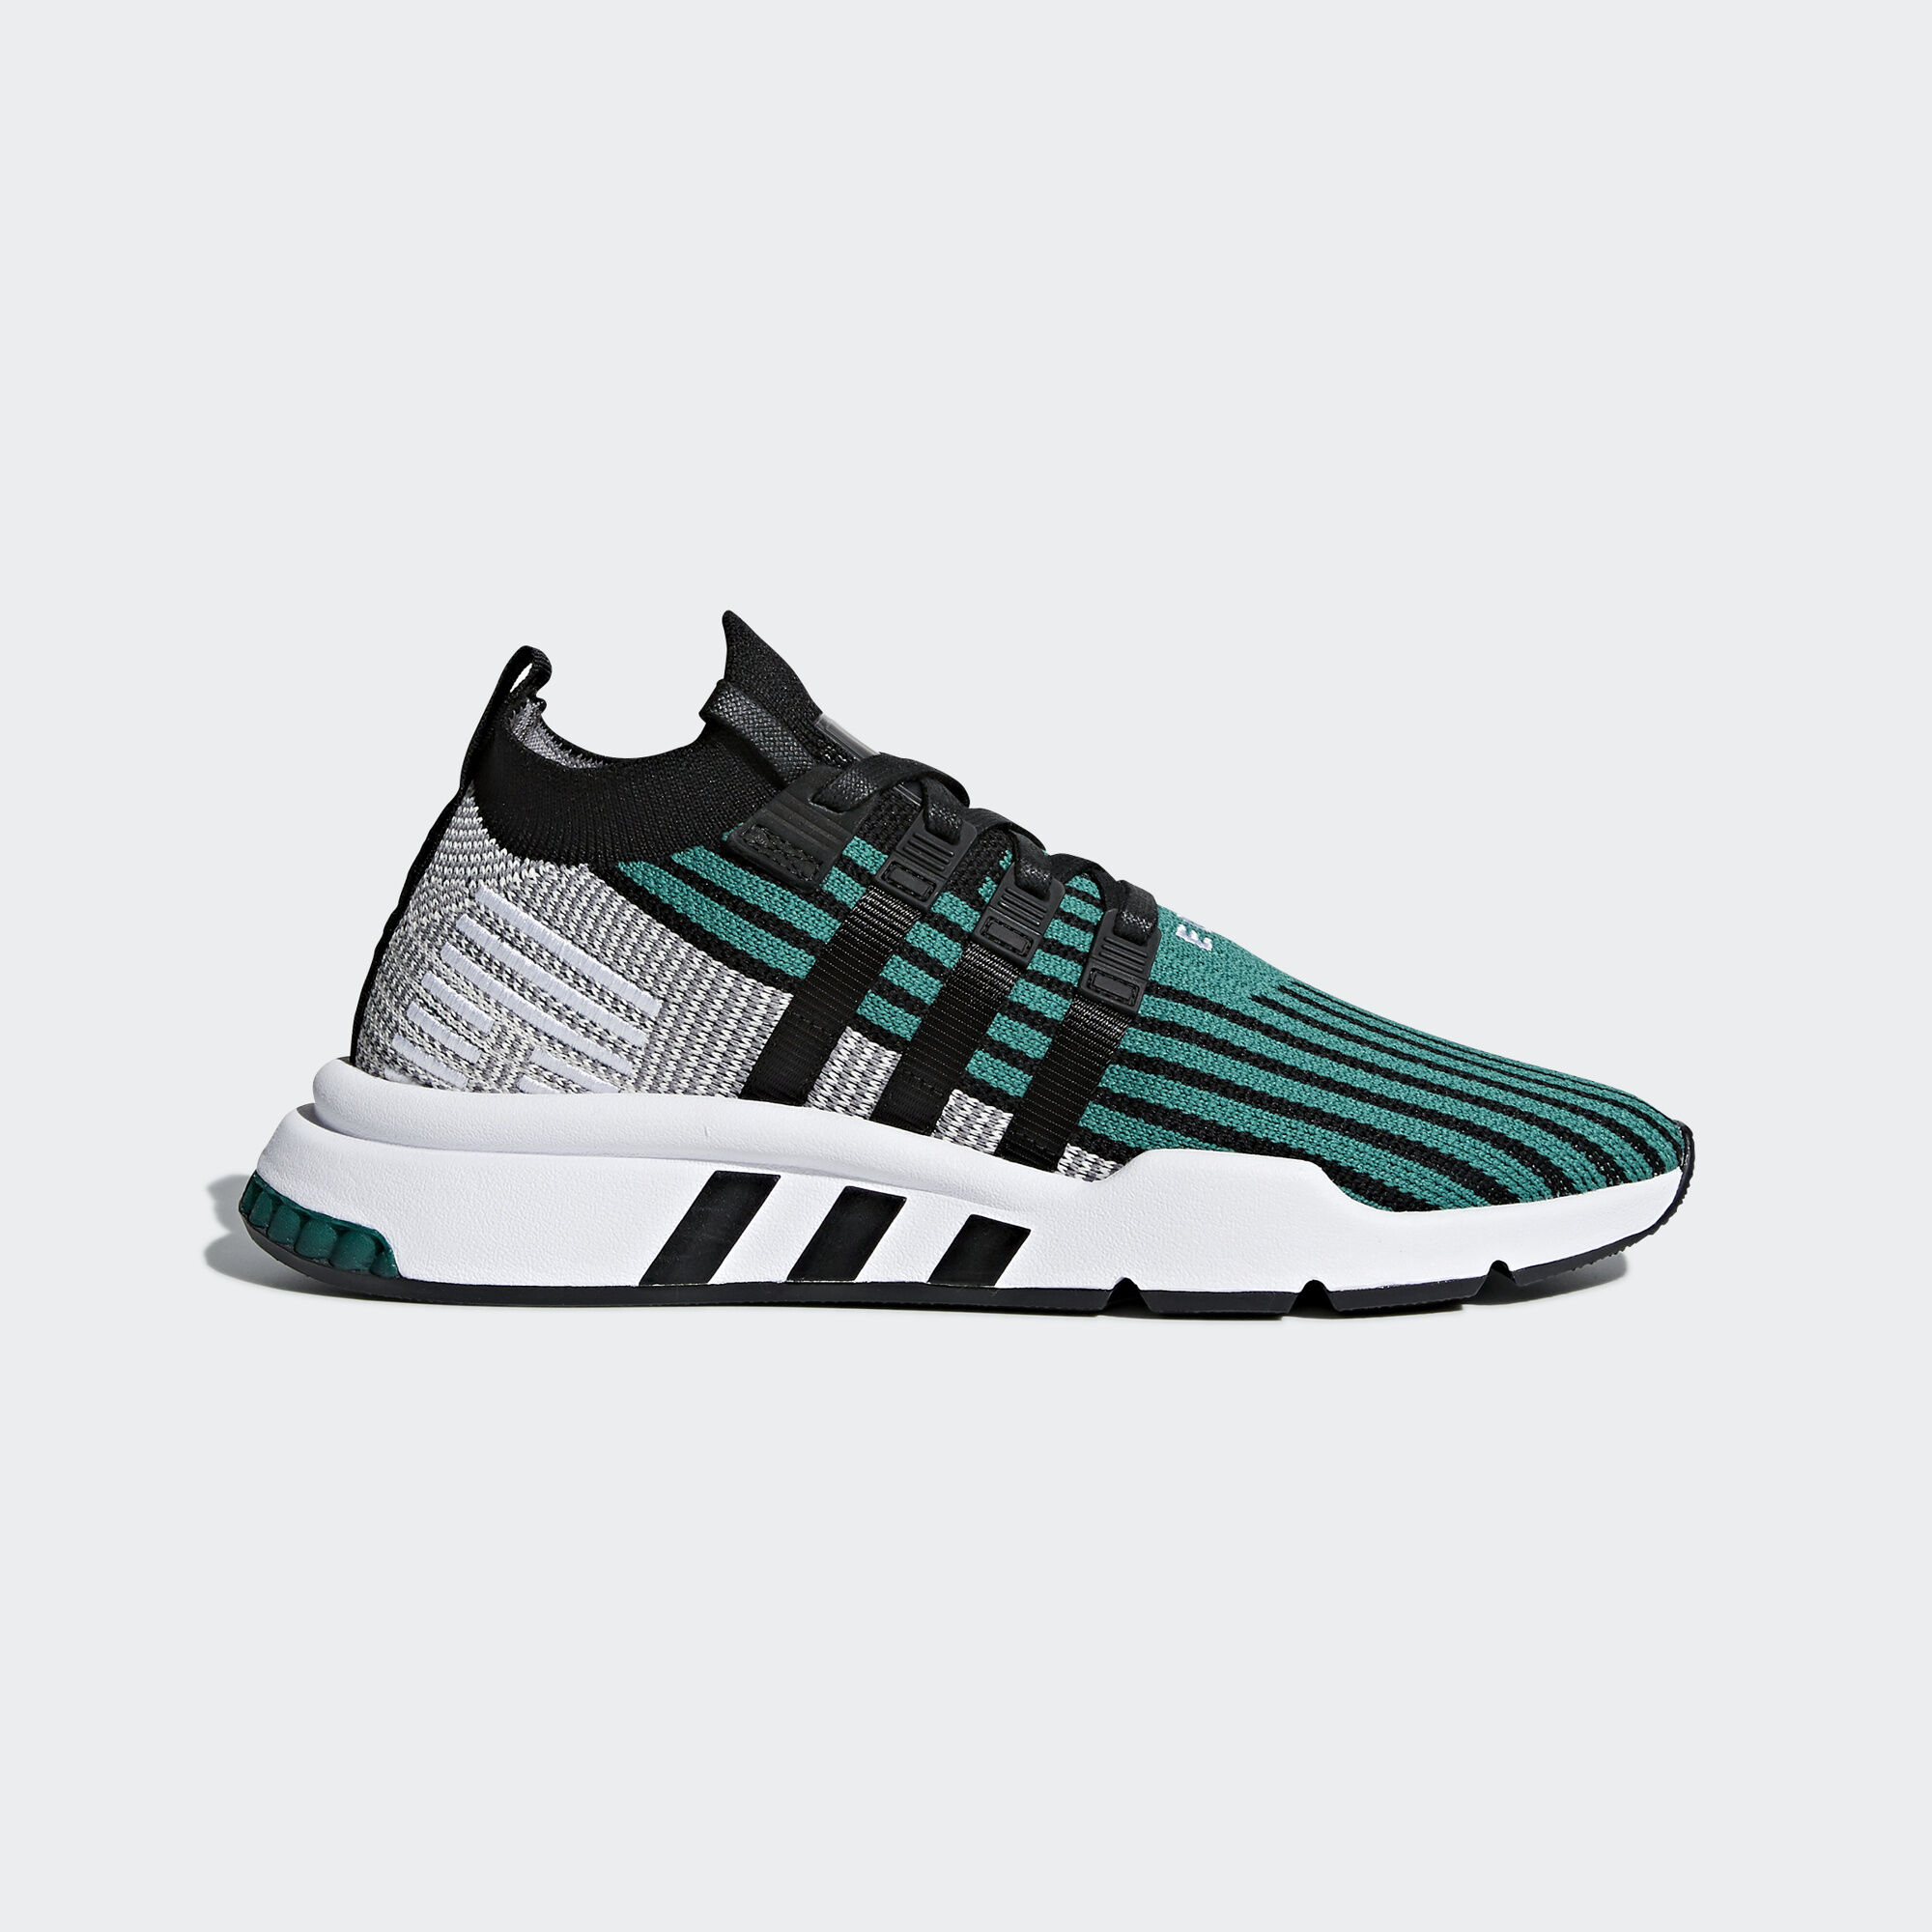 size 40 65fe2 40c23 adidas - EQT Support Mid ADV Primeknit Shoes Sub GreenCore BlackCore  Black. Originals